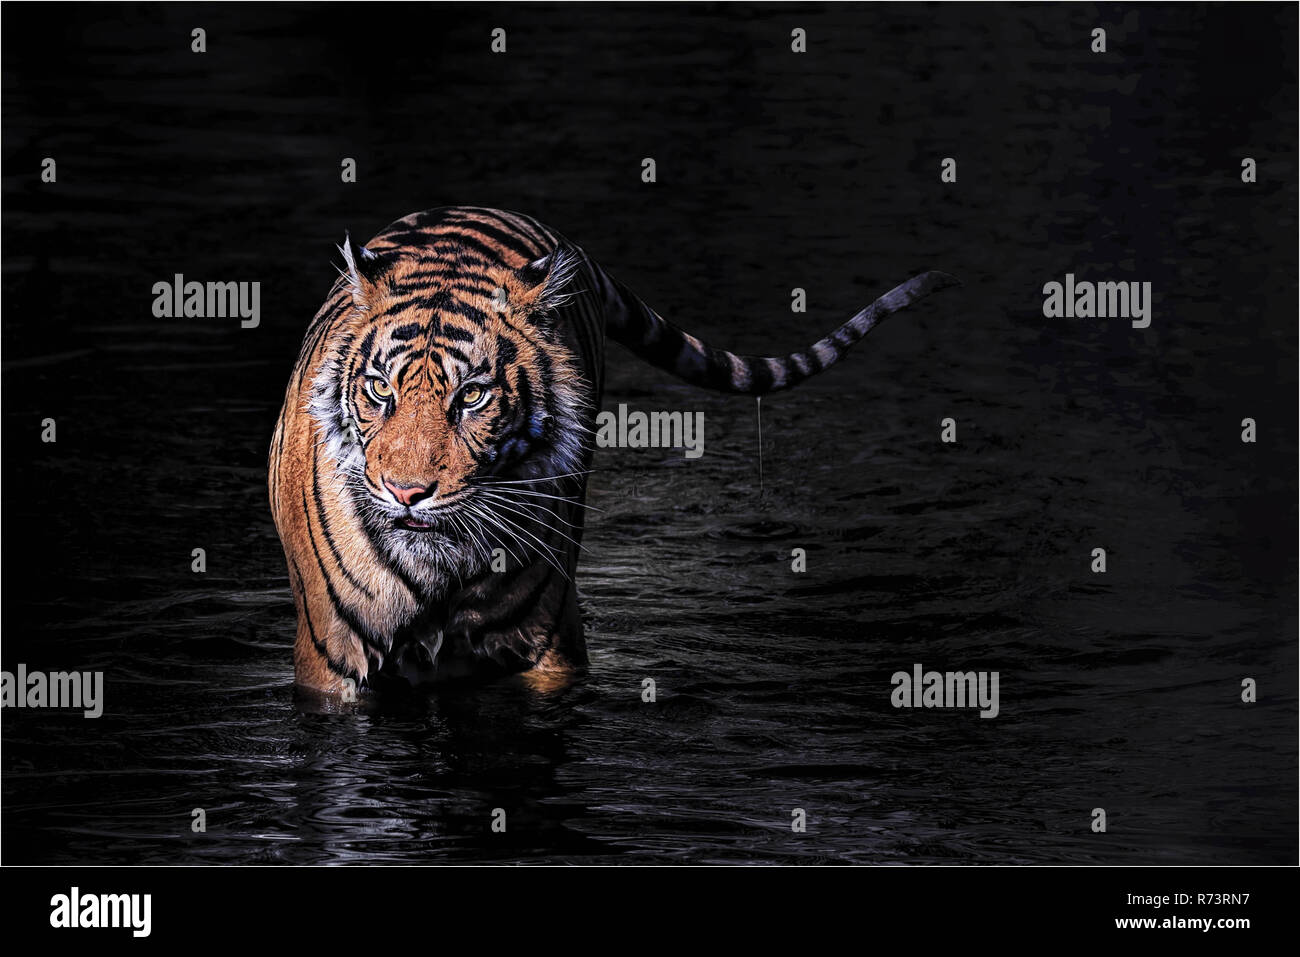 big strong tiger taking a bath in hot summer - Stock Image